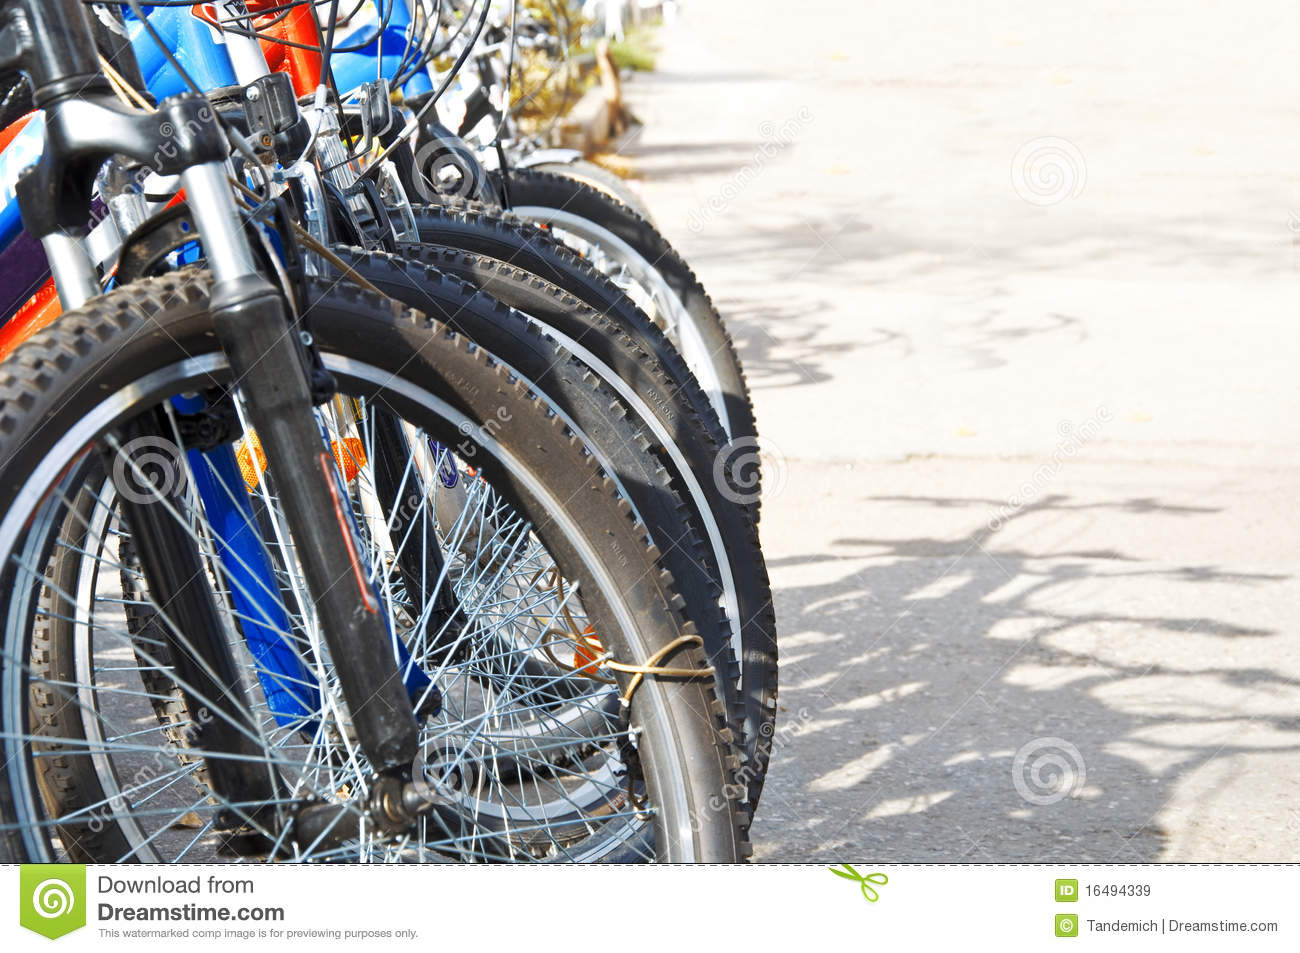 Royalty Free Stock Images: Bicycle parking zone